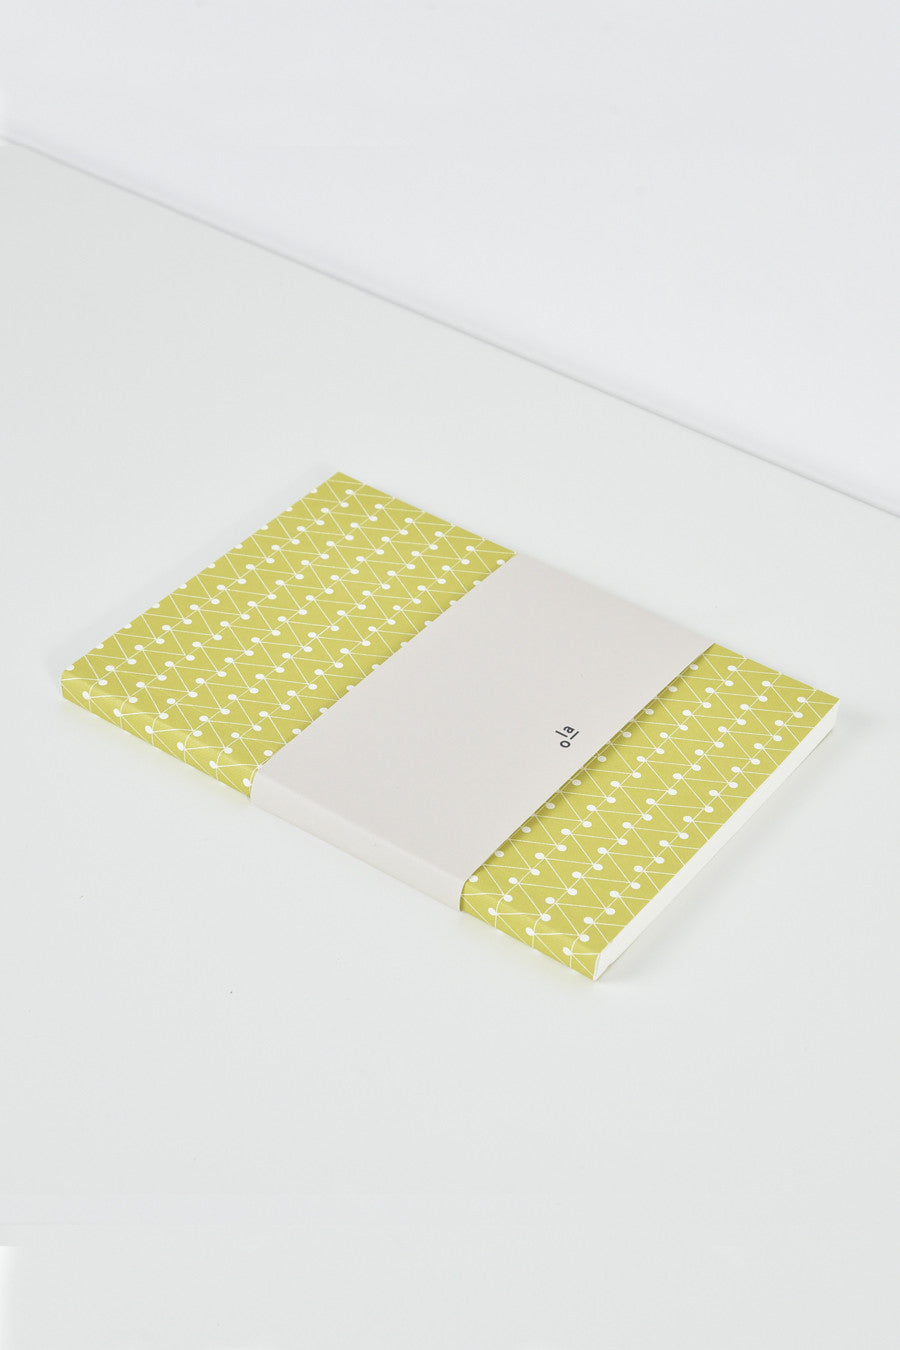 Layflat Leaf Green Dash Print Notebook | A5